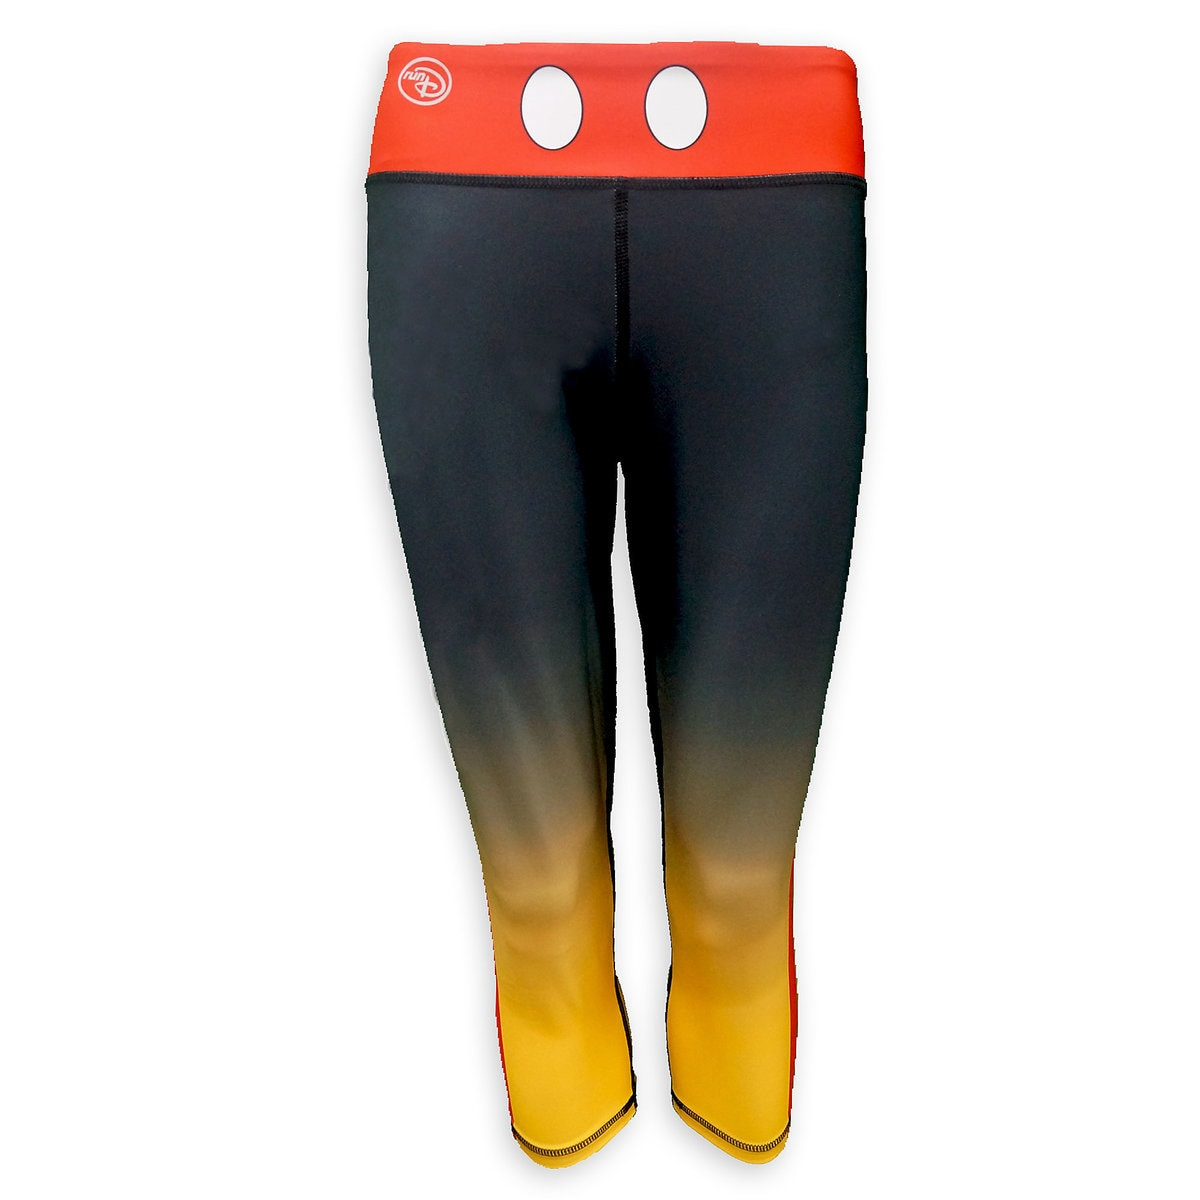 56db3a1c15ba39 Product Image of Mickey Mouse runDisney Performance Capri Leggings for  Women # 1